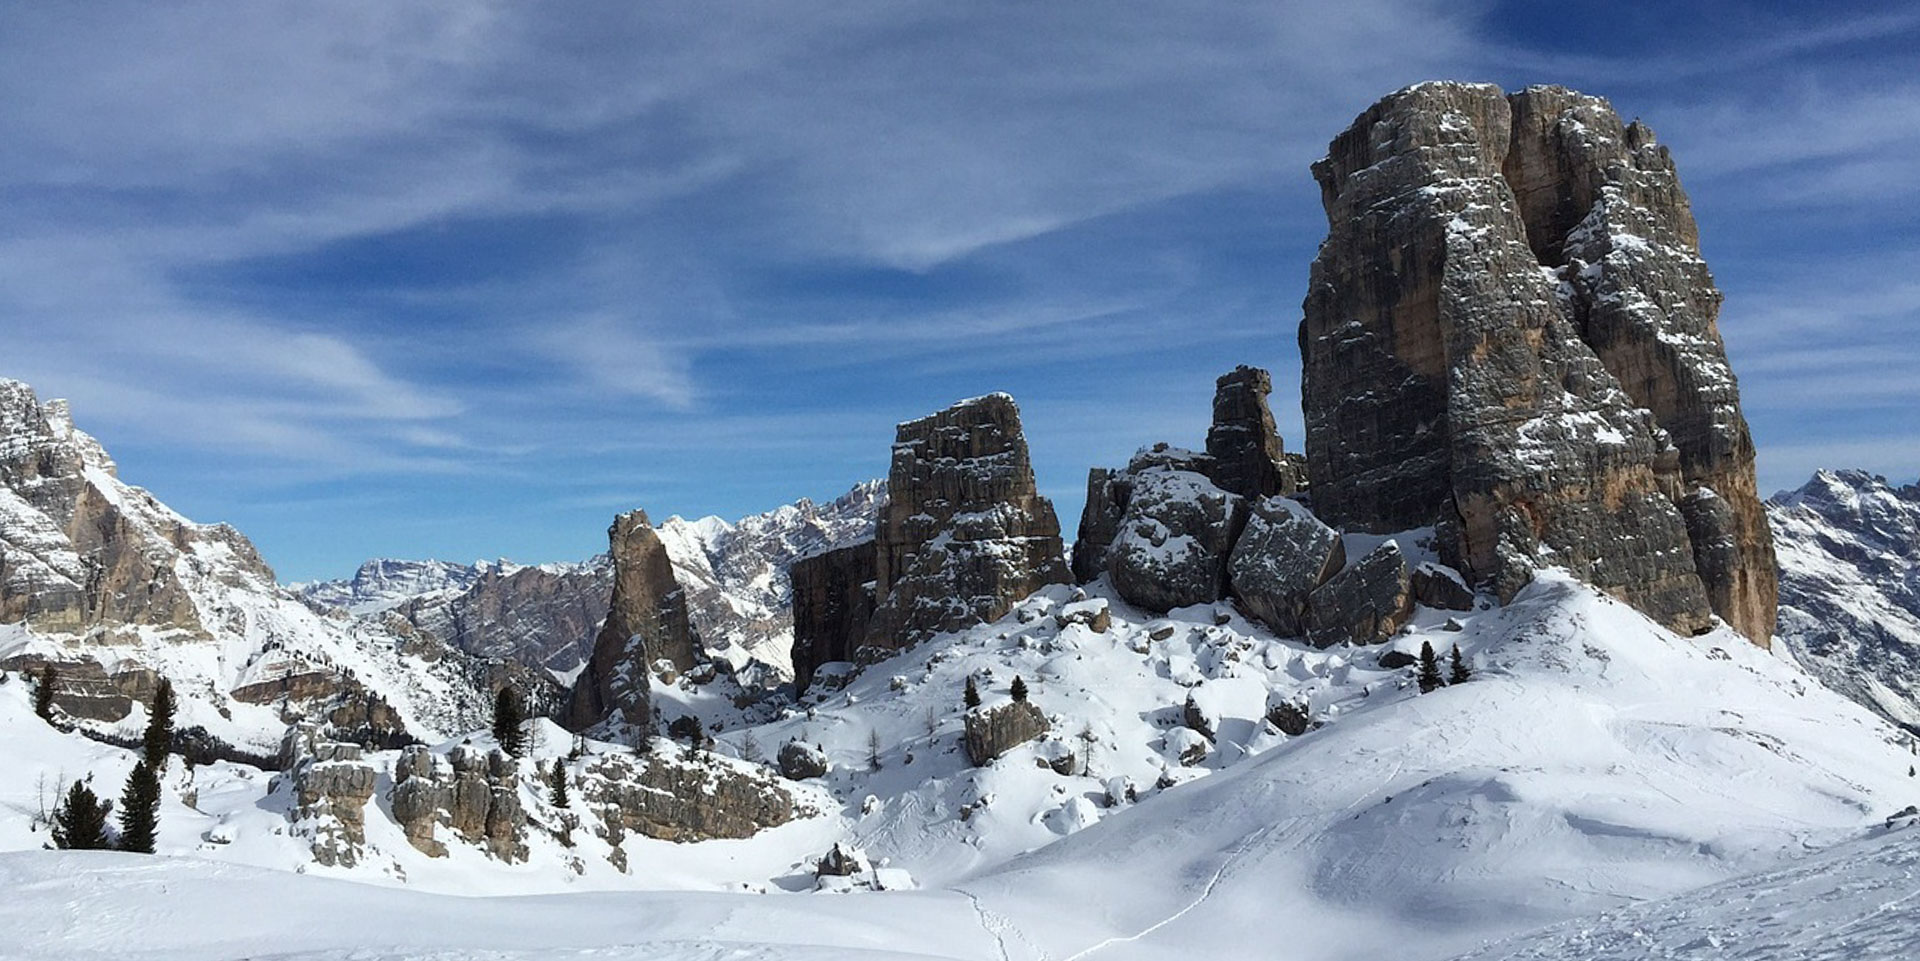 Rocky peaks, characteristic of the Dolomites, rise up above the slopes of Cortina ski area